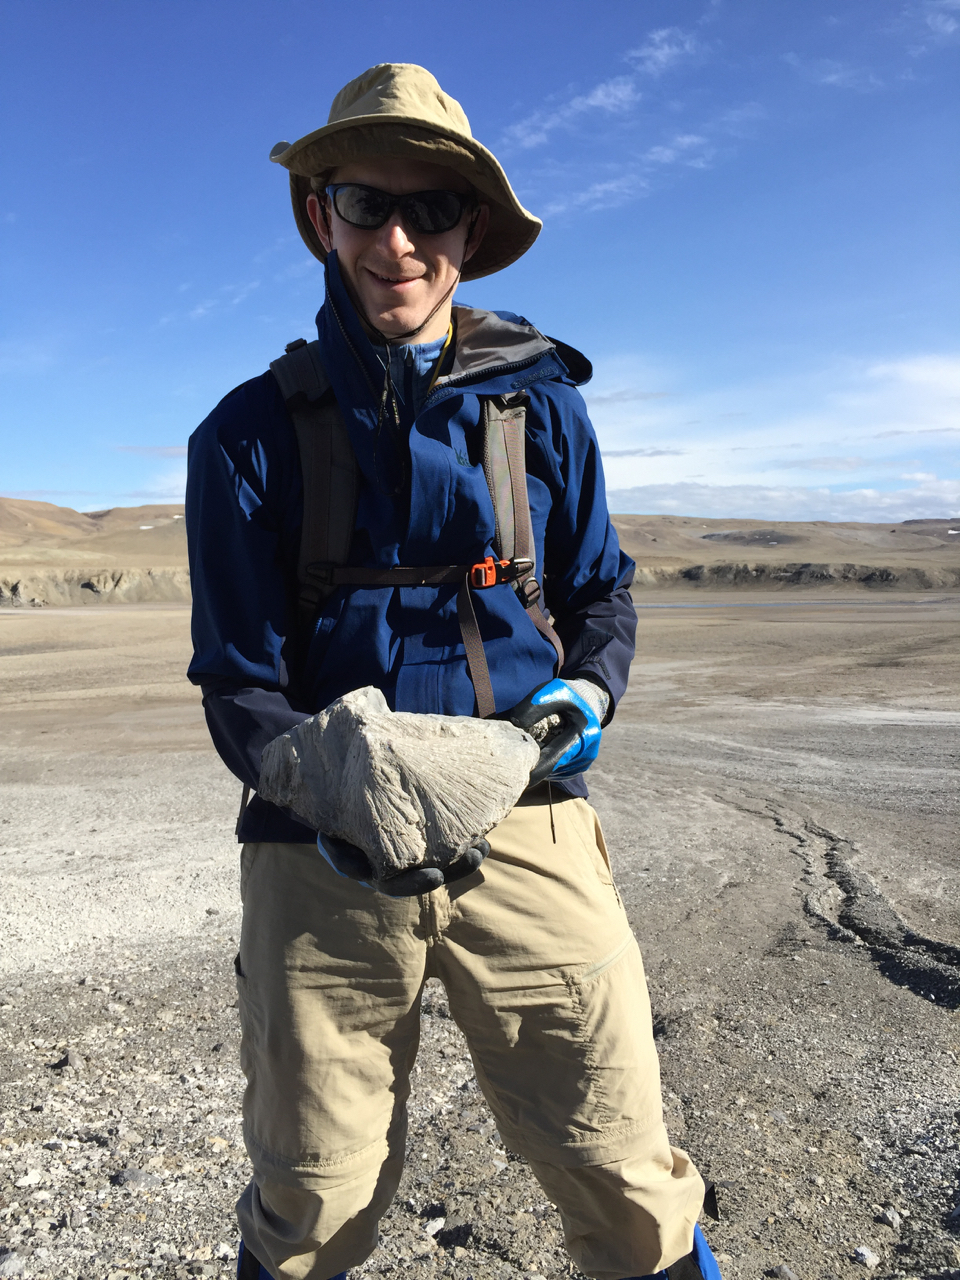 Holding a  shattercone  while exploring the  Haughton Impact Structure , Devon Island, Nunavut, Canada in July 2016.